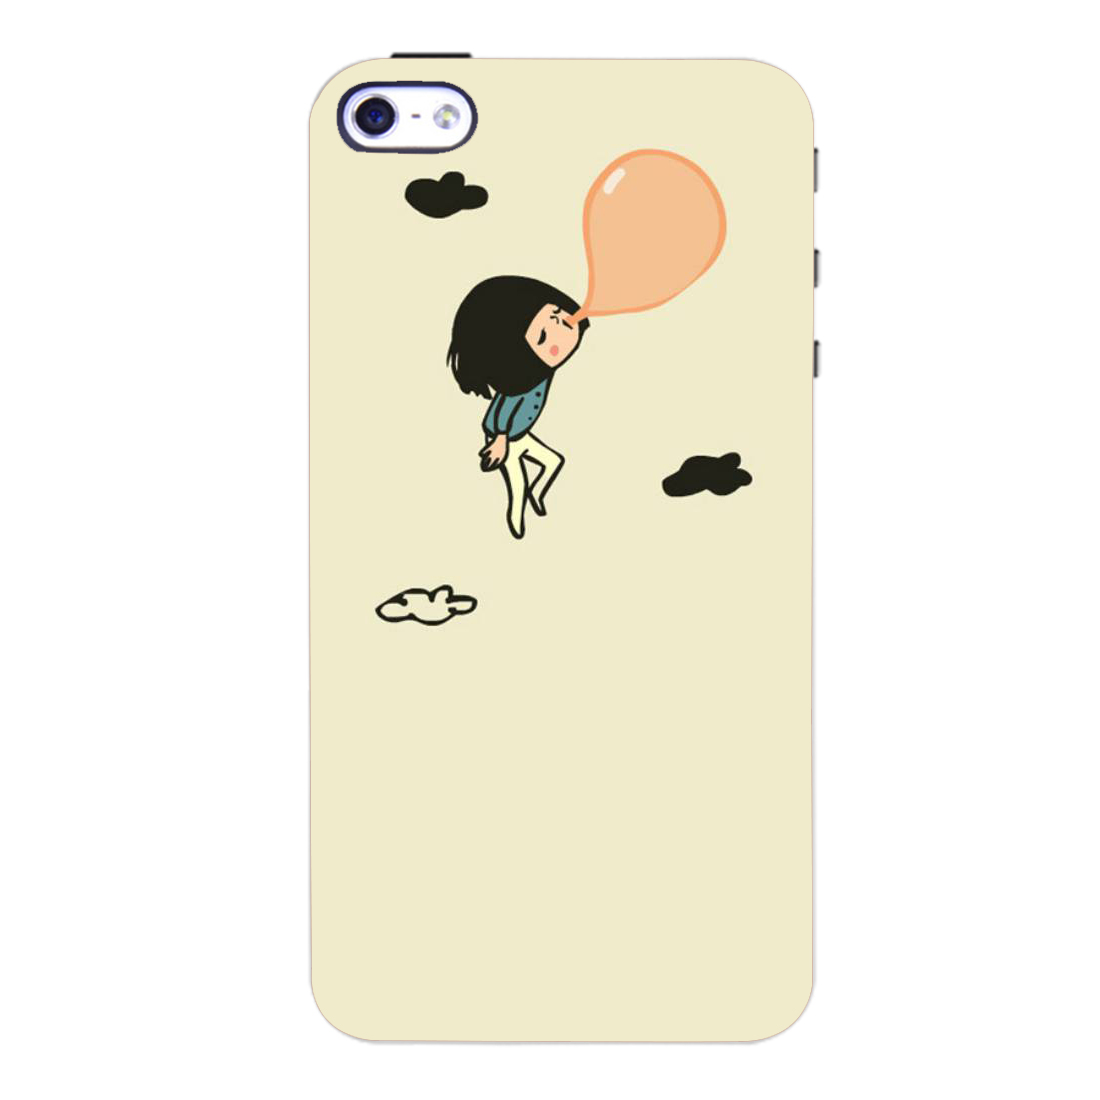 Image Result For Of The Best Iphone Cases Fashionable Iphone Cases